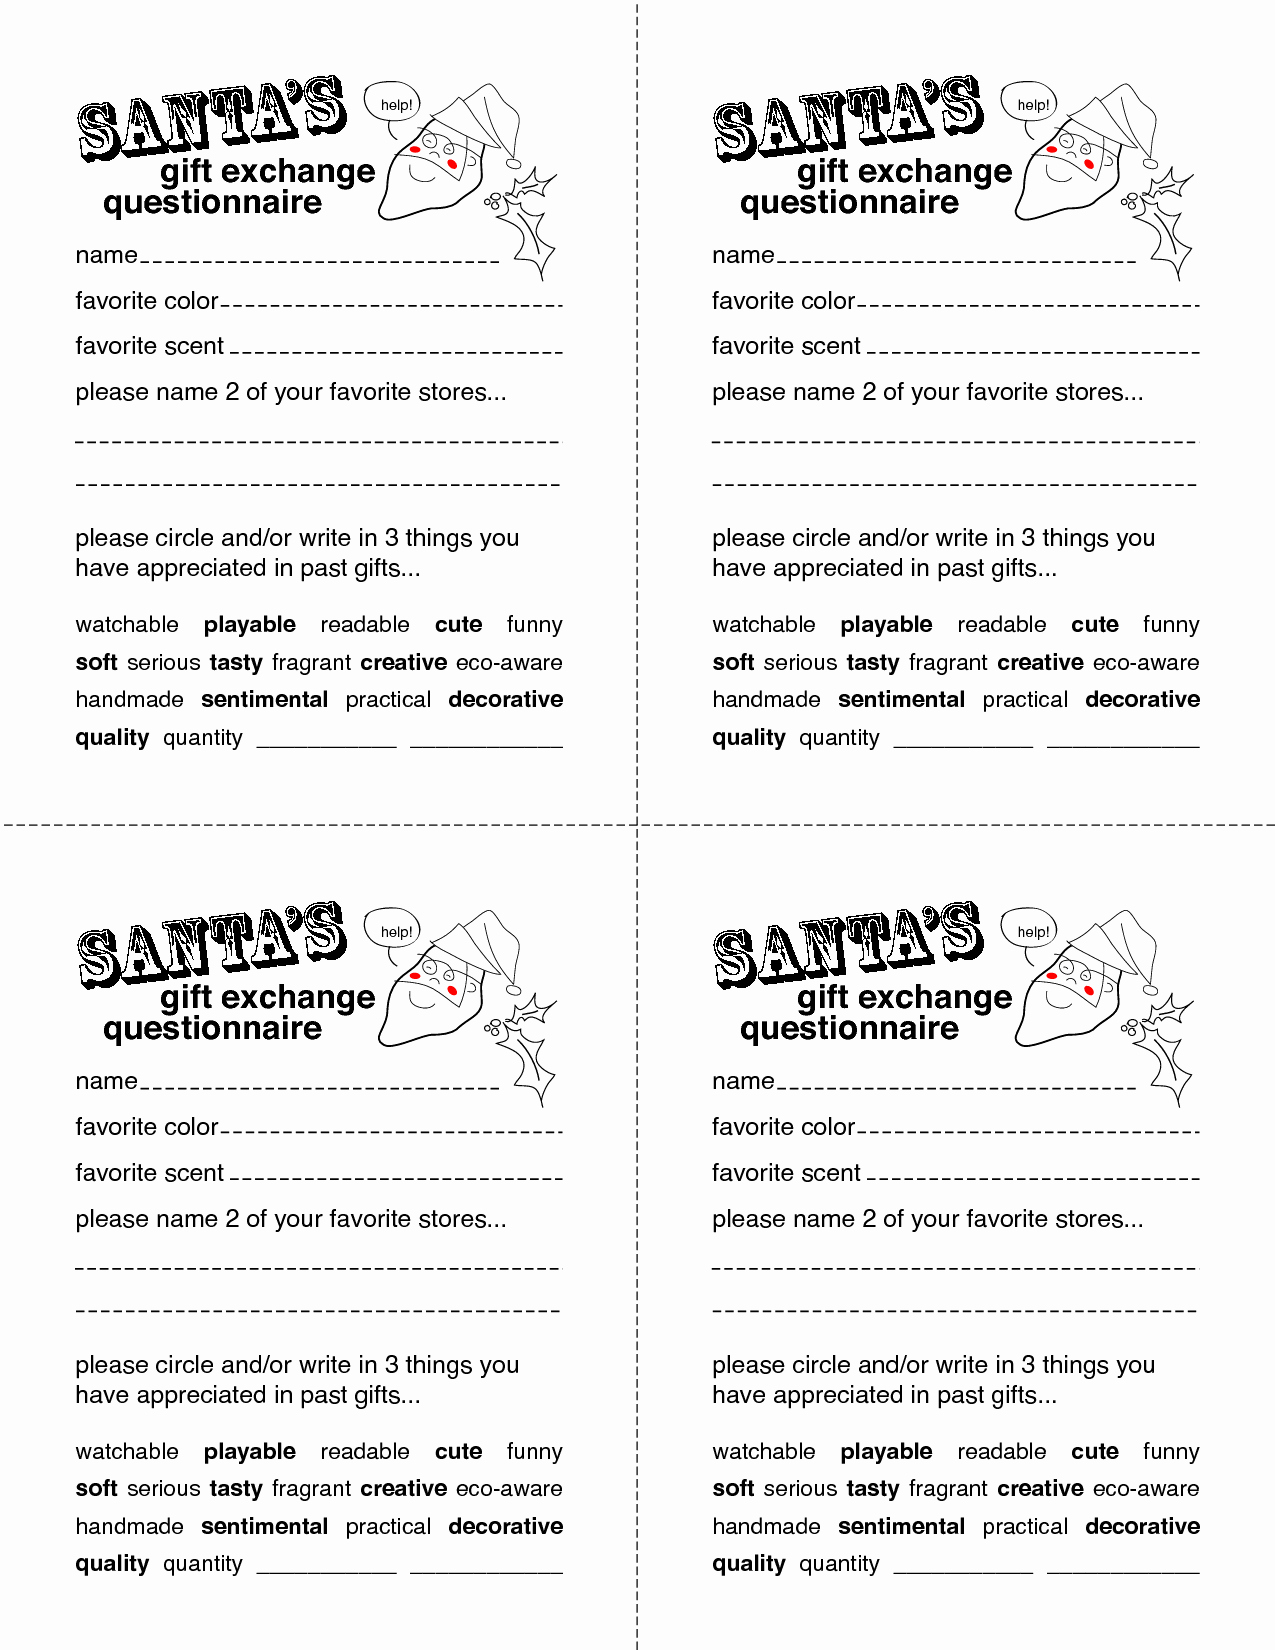 Secret Santa Template form Awesome Secret Santa Gift Exchange forms